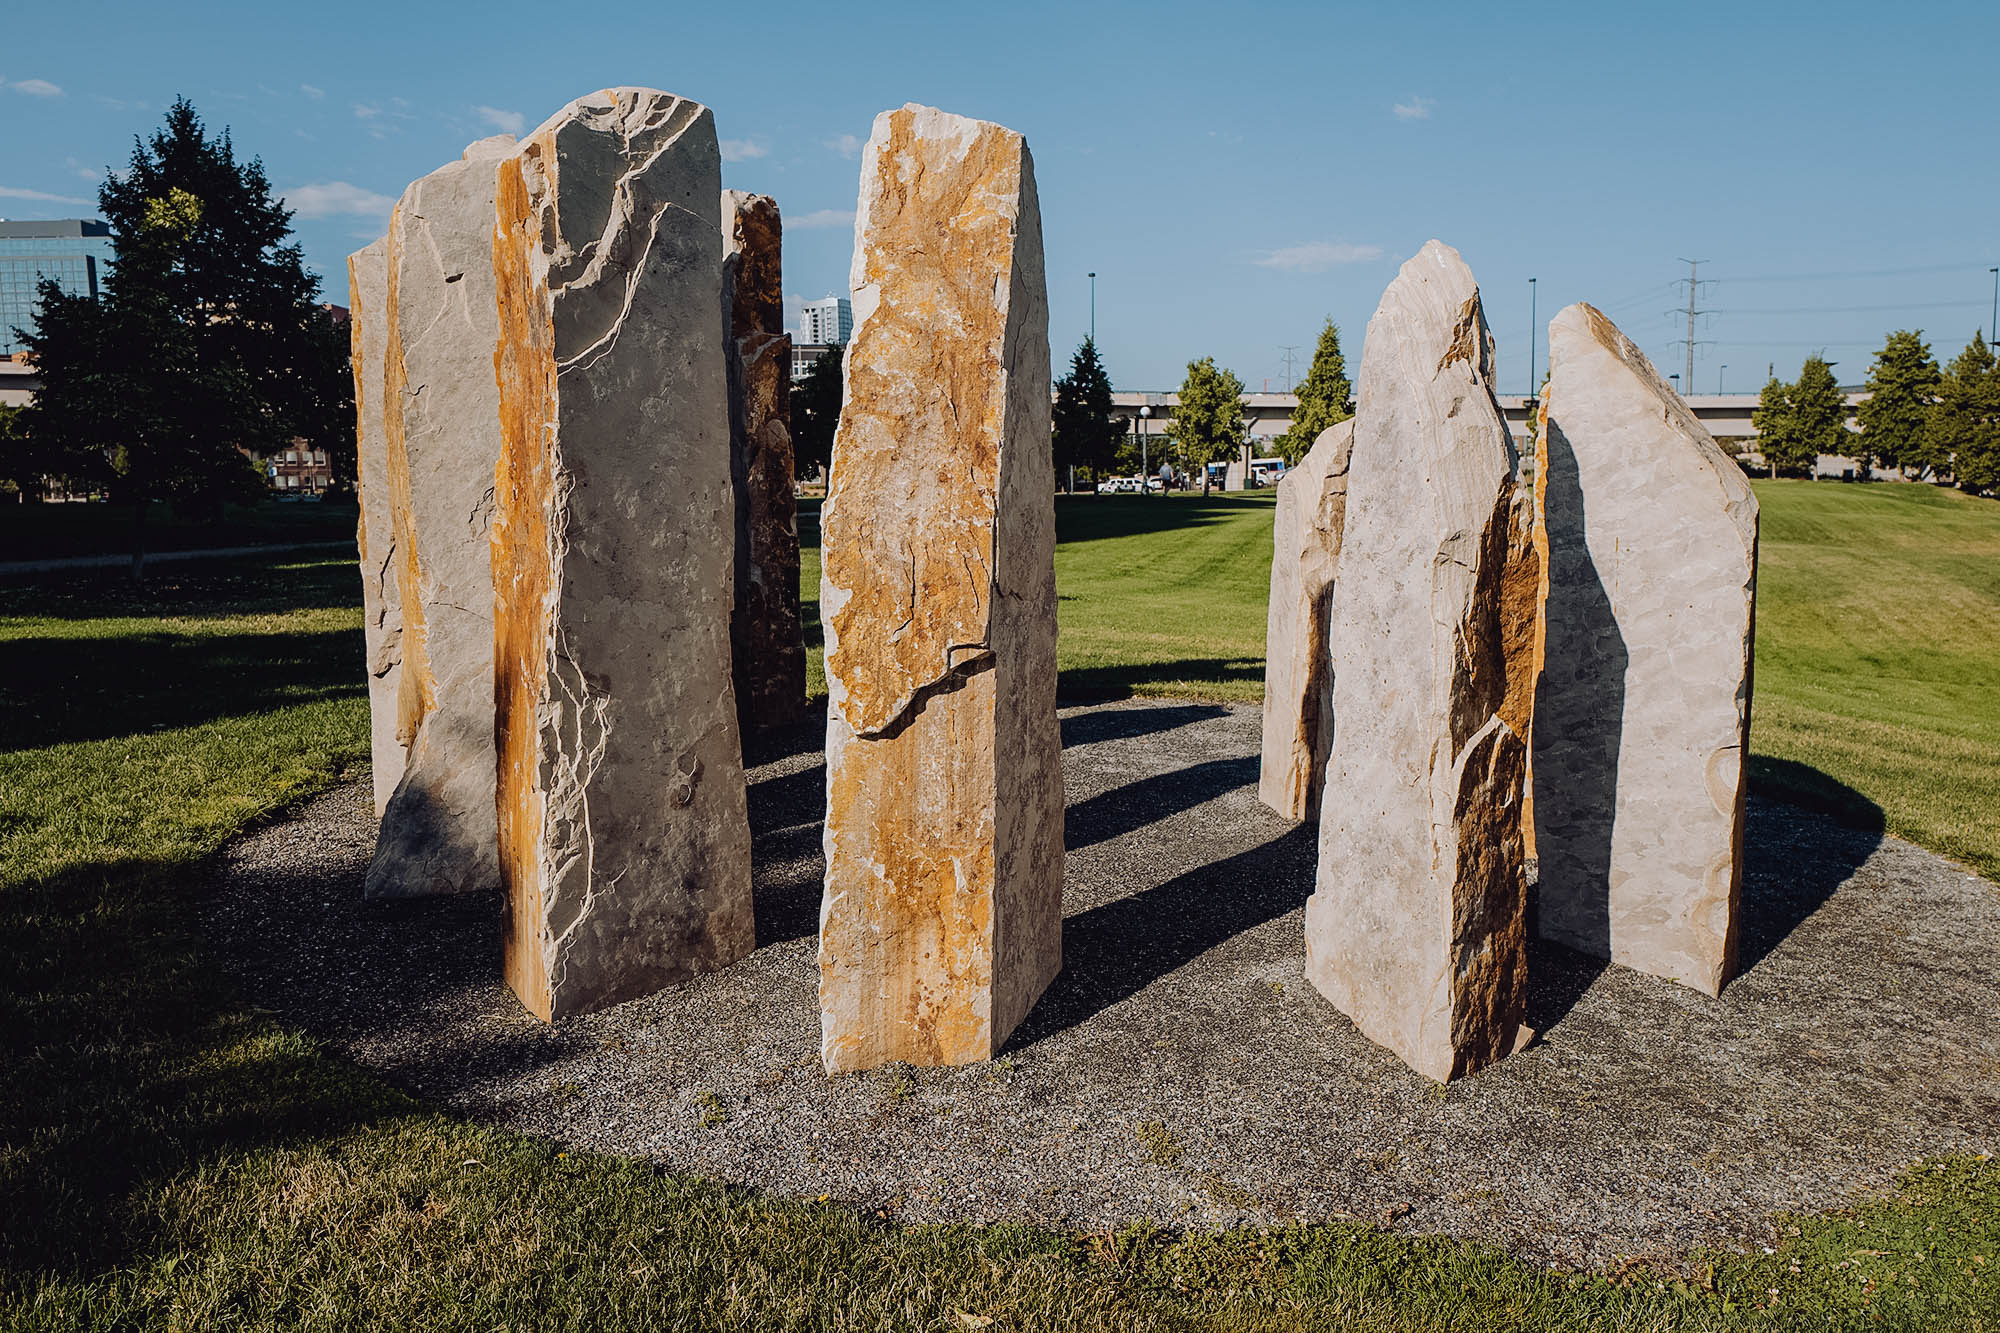 Stones placed in a circle in a park in Denver, CO